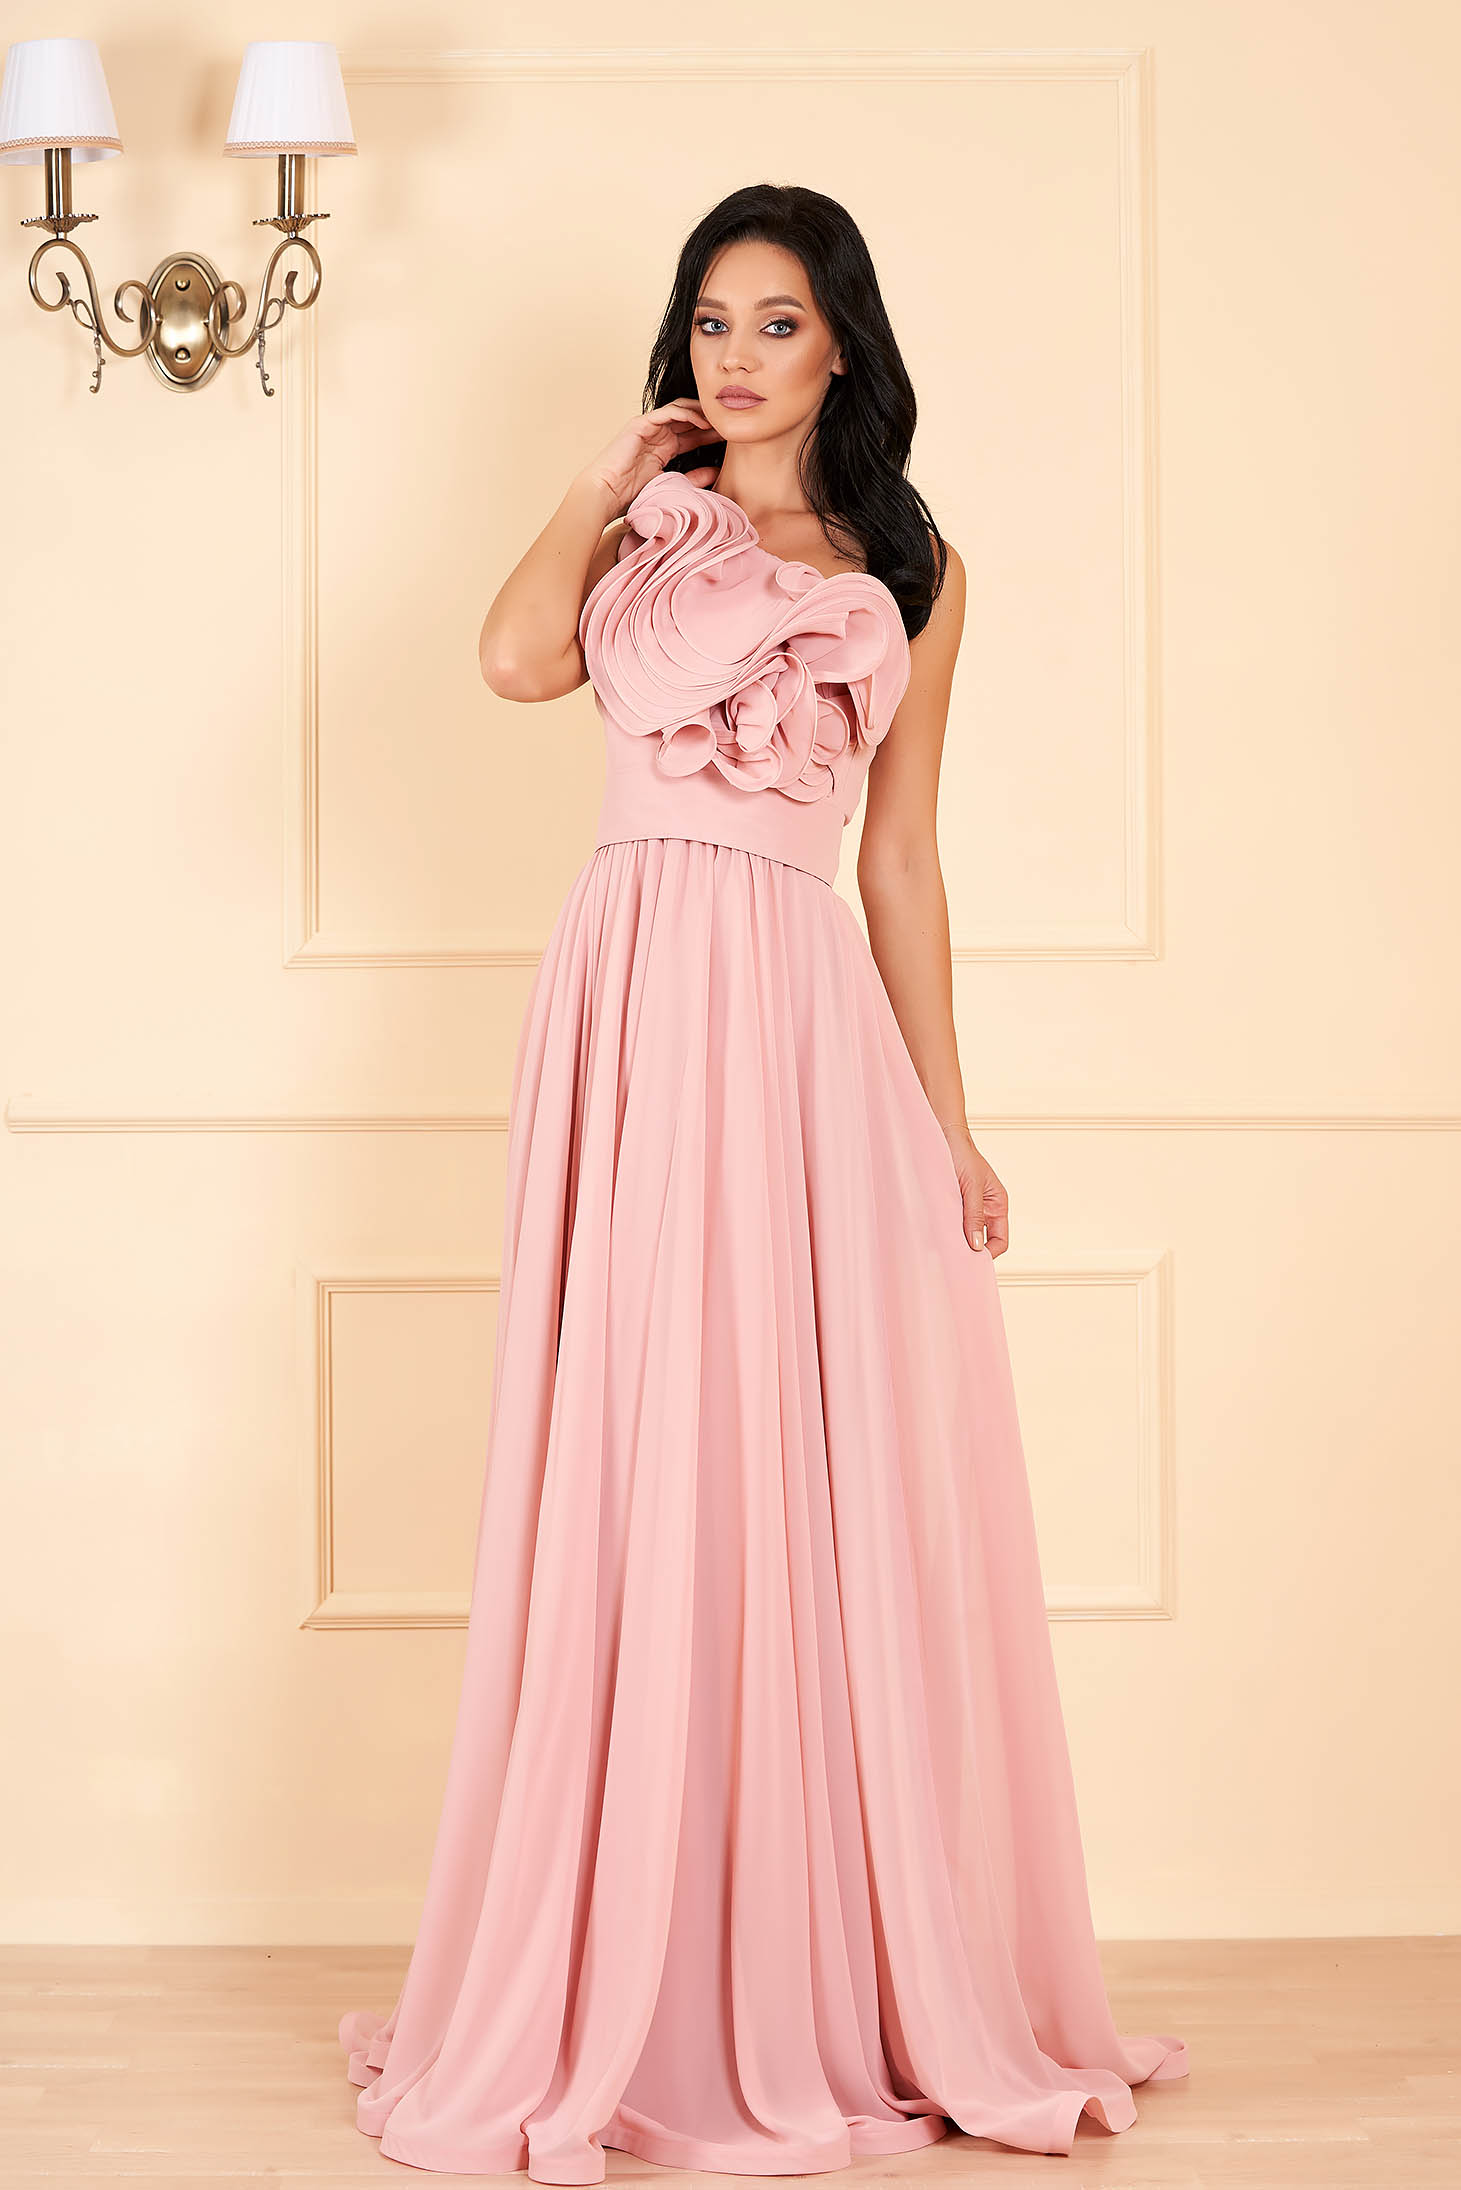 Ana Radu luxurious one shoulder from veil fabric with inside lining with ruffle details accessorized with tied waistband peach dress